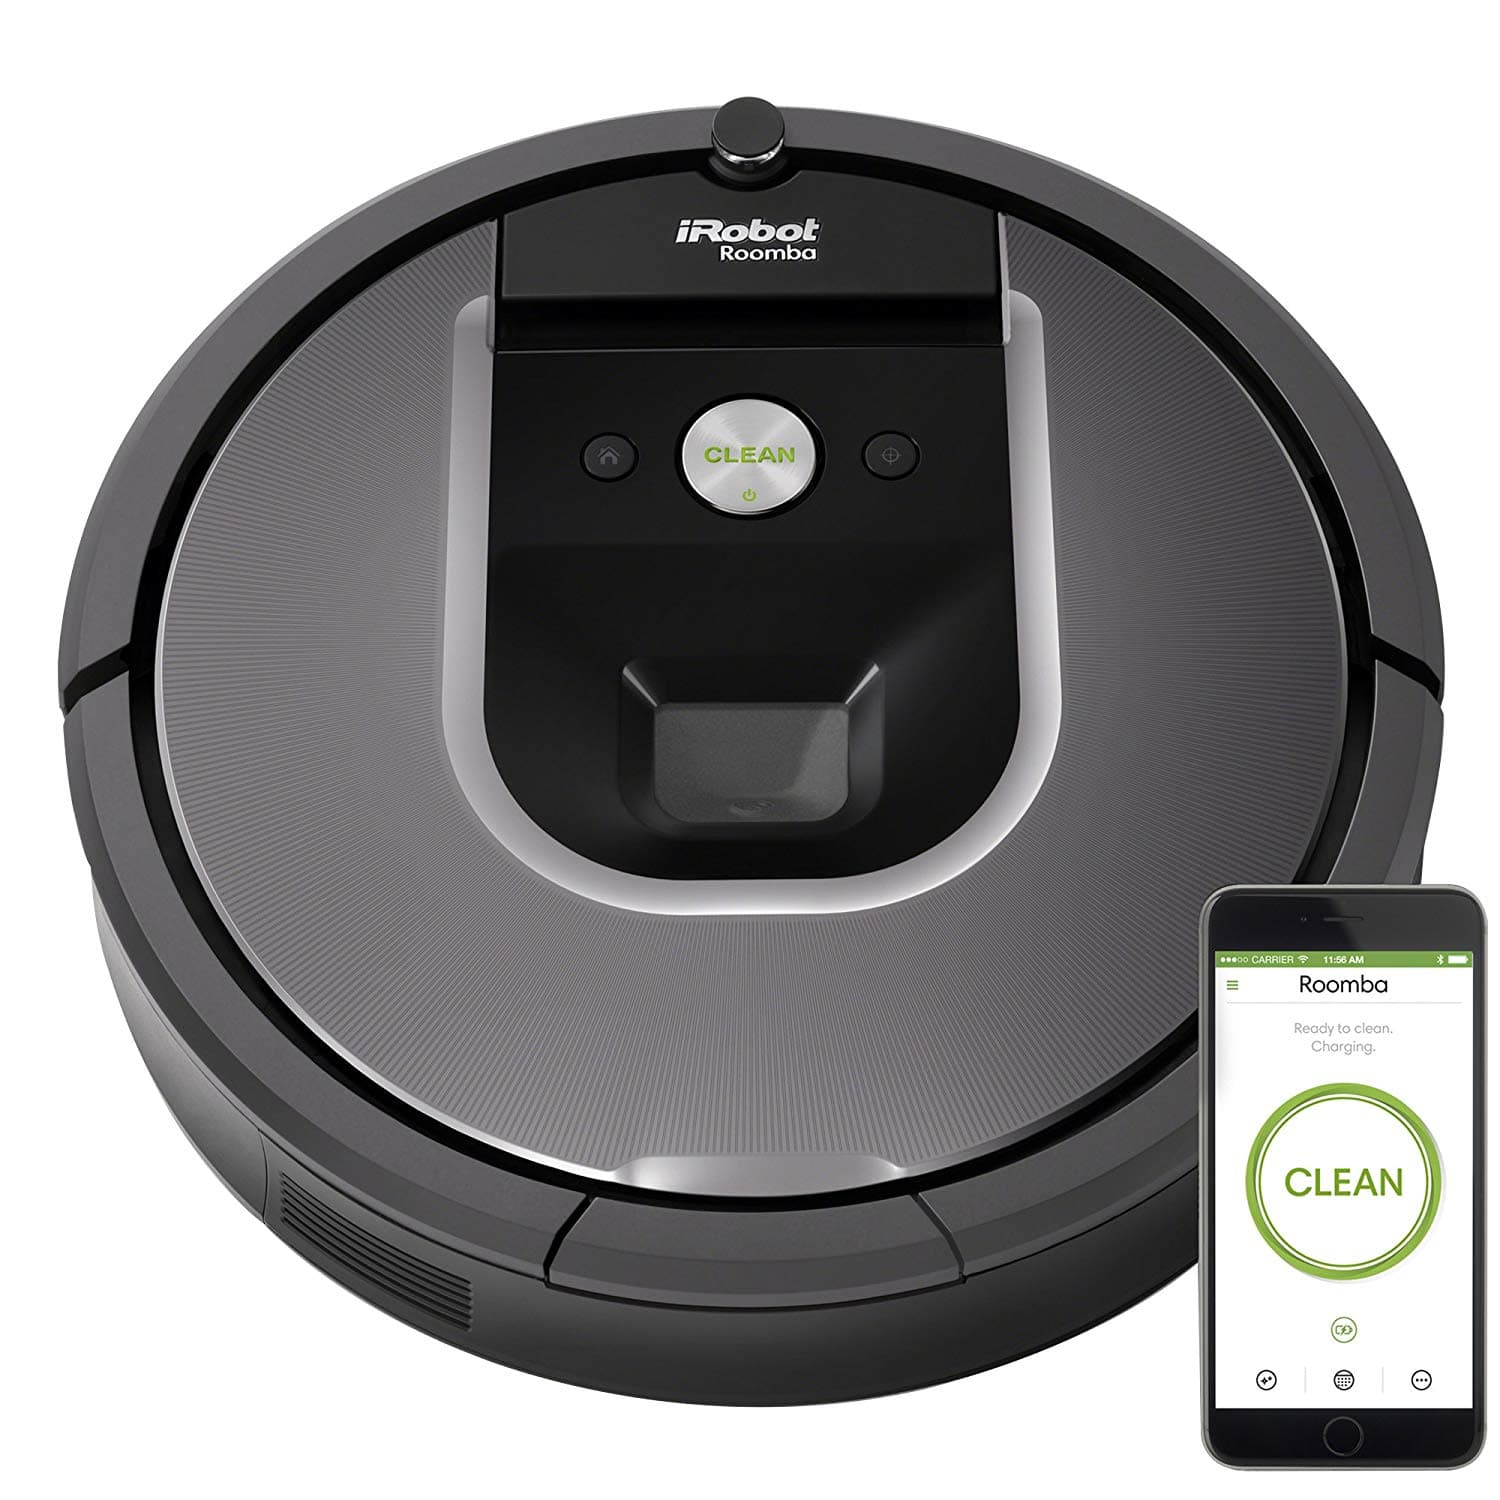 iRobot Roomba 960 Robot Vacuum- Wi-Fi Connected Mapping, Works with Alexa, Ideal for Pet Hair, Carpets, Hard Floors [Roomba 960] $399.99